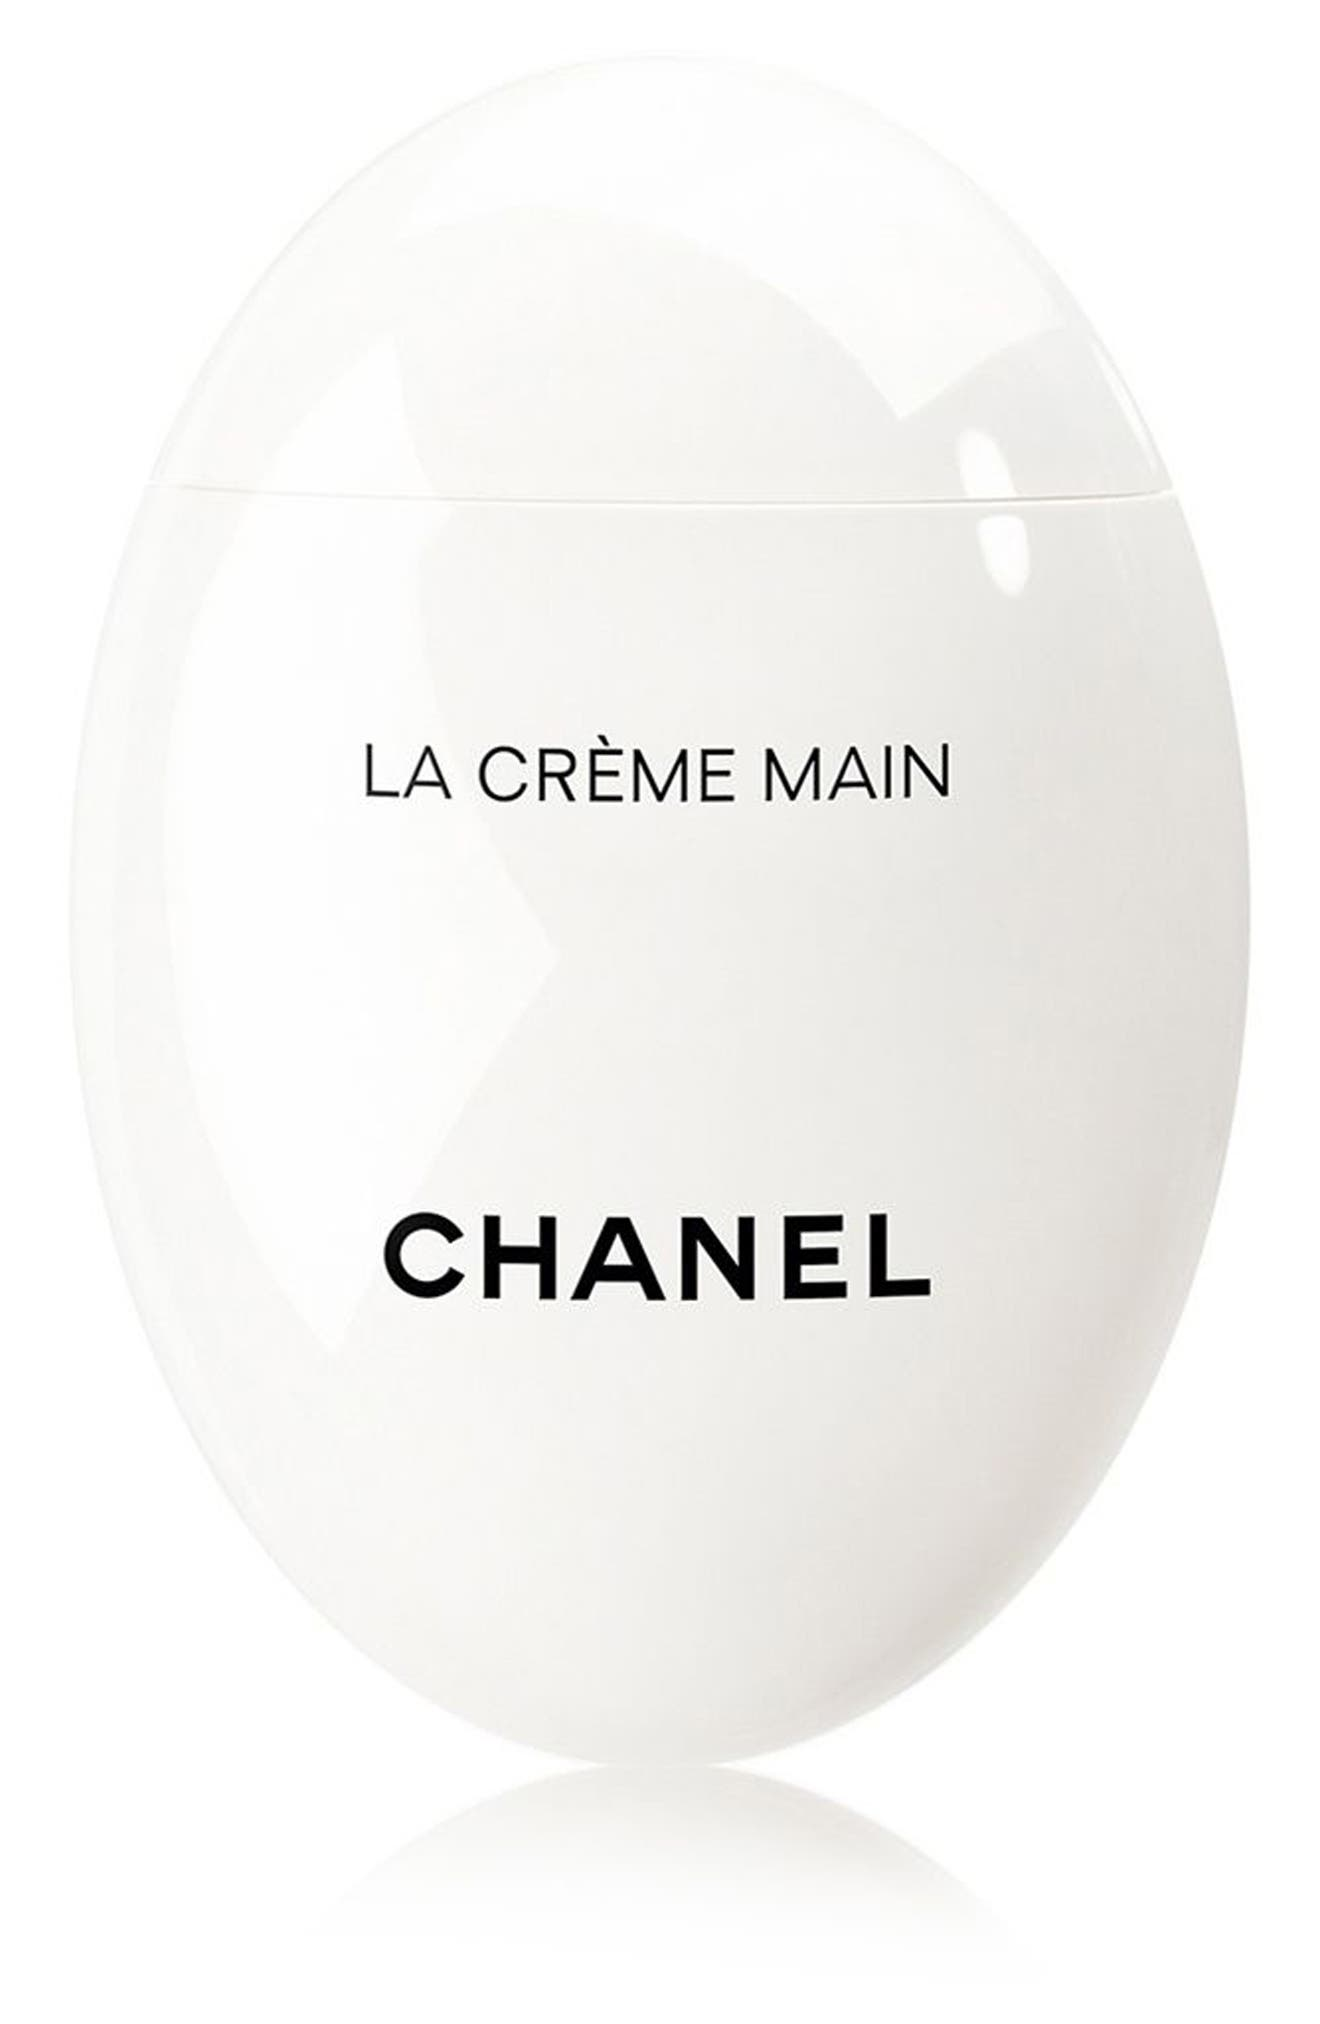 CHANEL LA CREME MAIN 